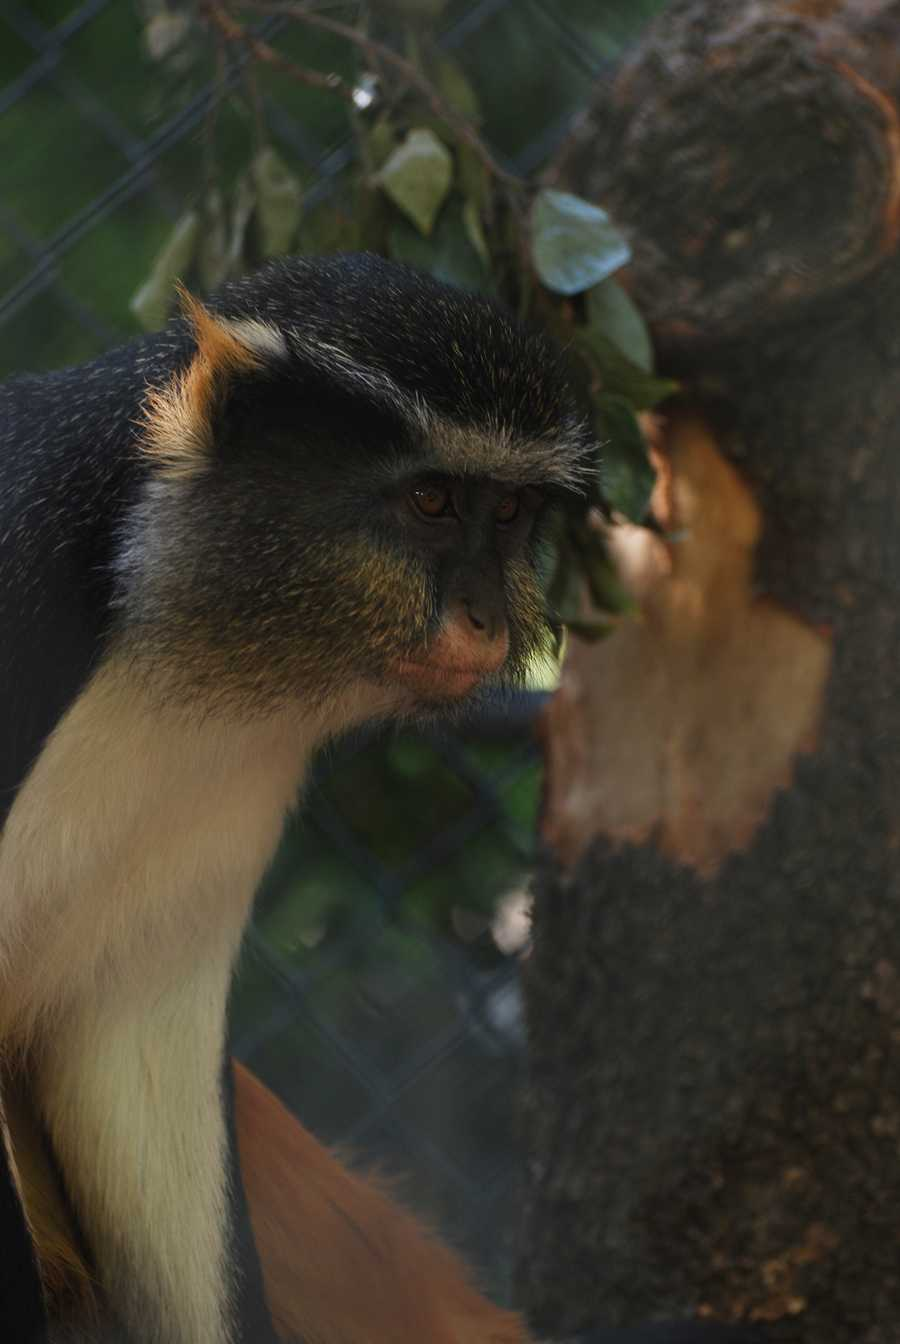 The Sacramento Zoo announced Thursday that it had acquired a Wolf's guenon monkey from the San Antonio Zoo.